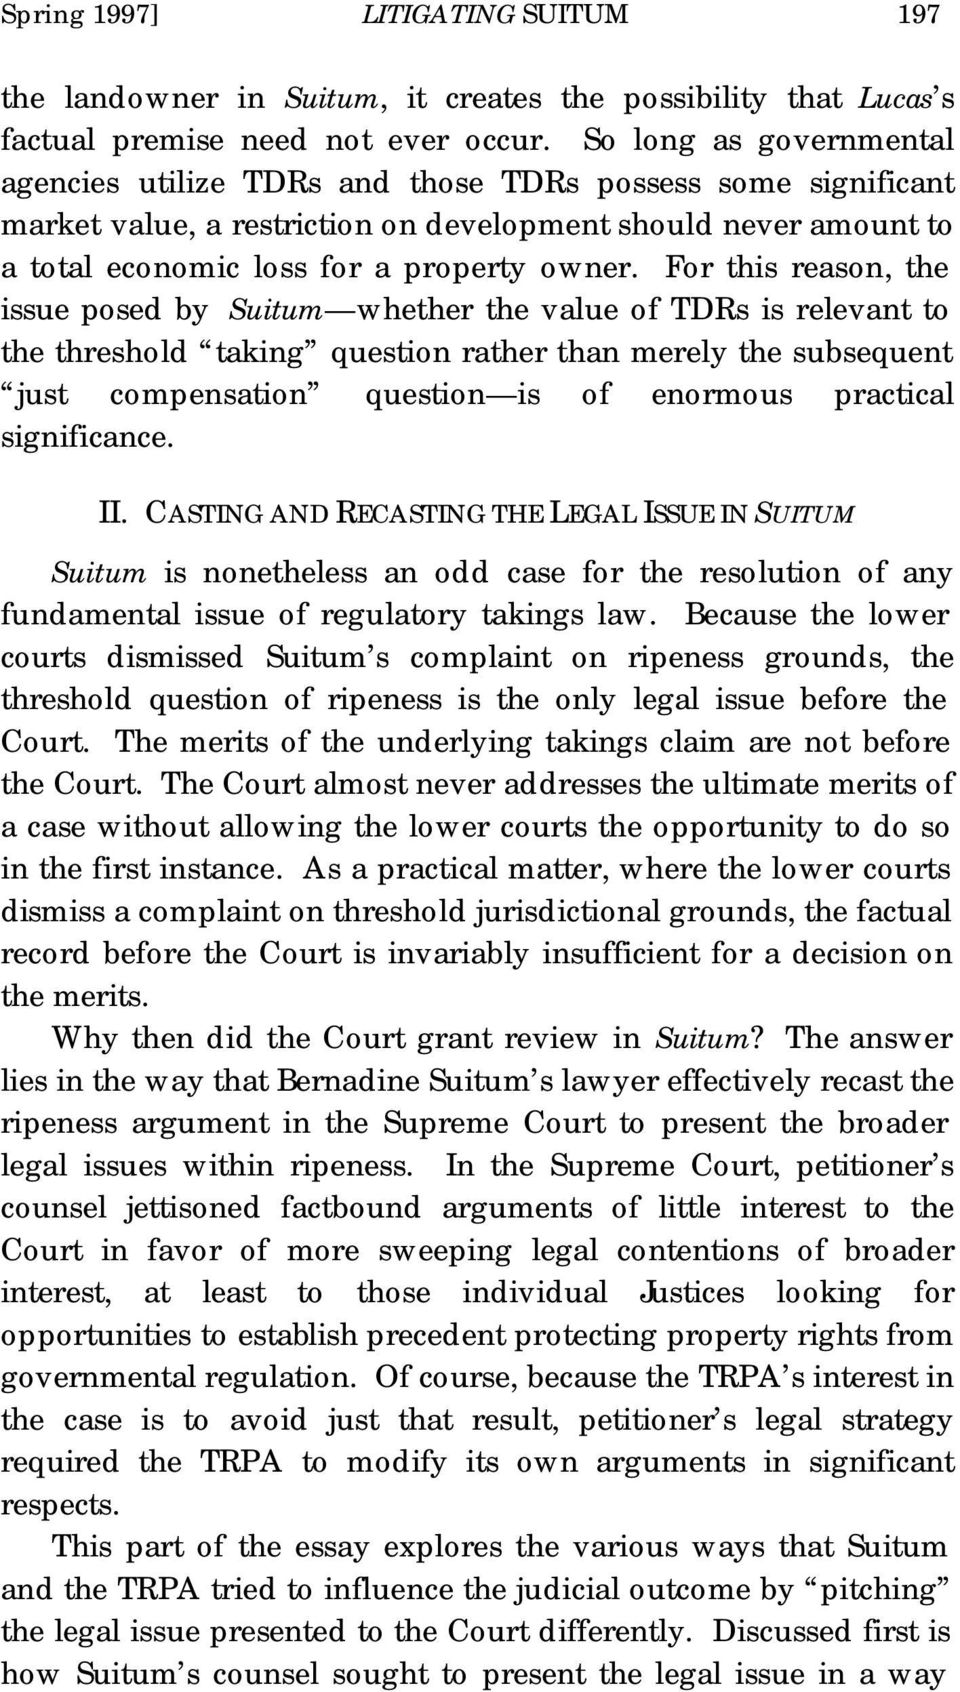 For this reason, the issue posed by Suitum whether the value of TDRs is relevant to the threshold taking question rather than merely the subsequent just compensation question is of enormous practical